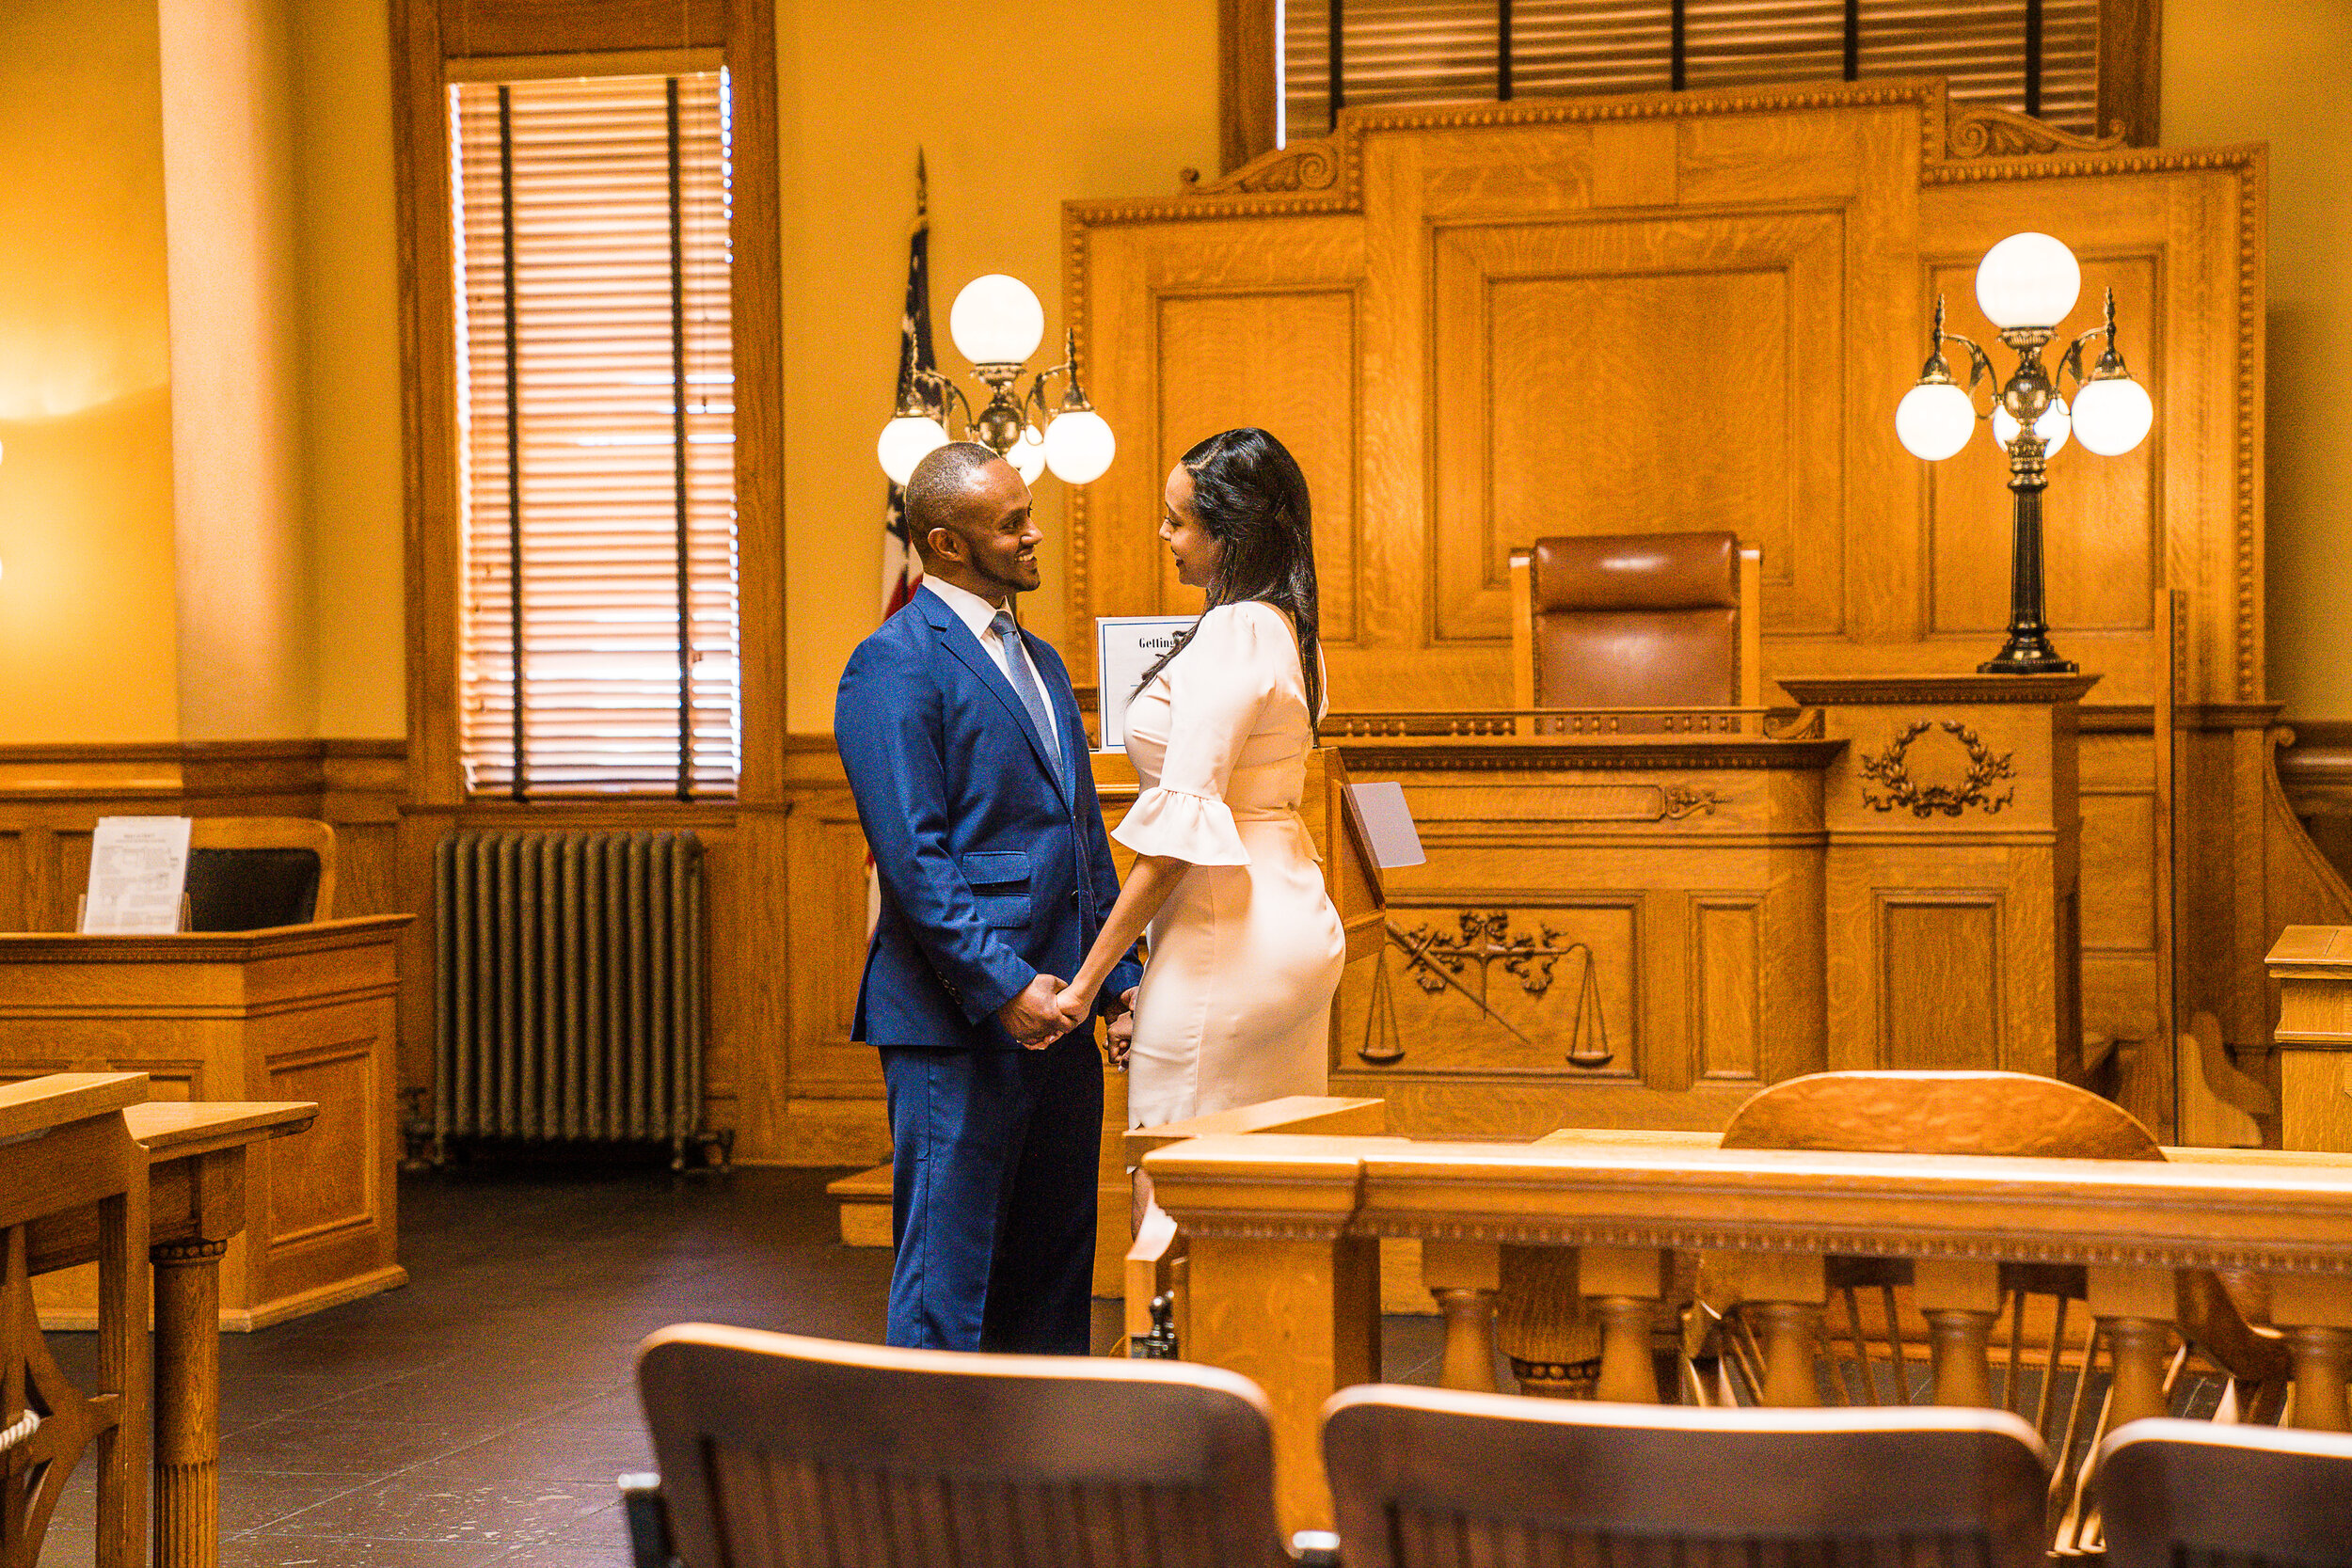 sewit-elopement-orange-county-santa-ana-courthouse-24.jpg